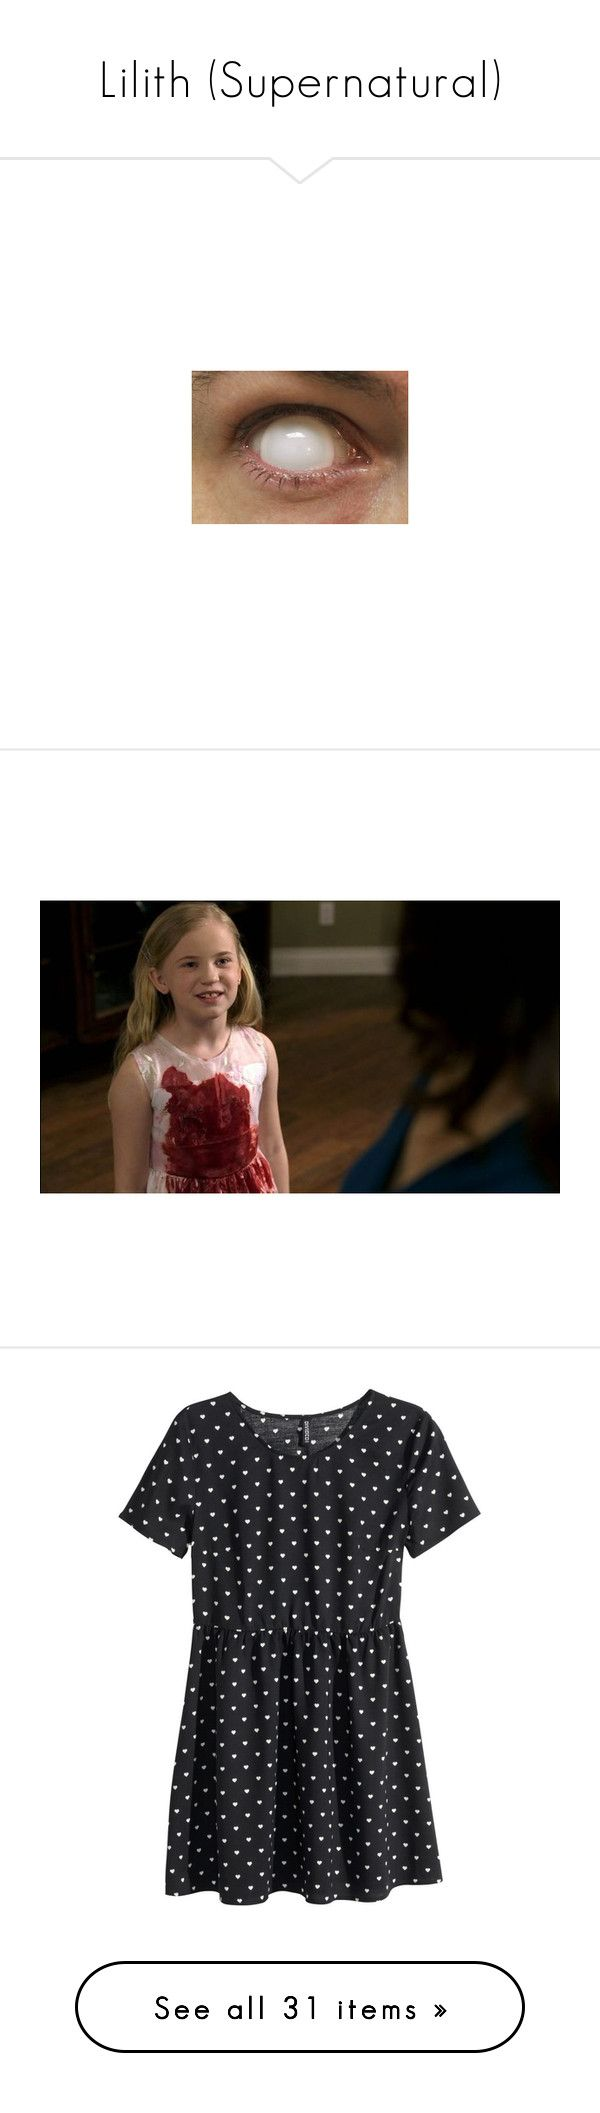 """""""Lilith (Supernatural)"""" by kitten89 ❤ liked on Polyvore featuring eyes, dresses, vestidos, tops, h&m, black, pattern dress, short-sleeve maxi dresses, short sleeve mini dress and print dress"""